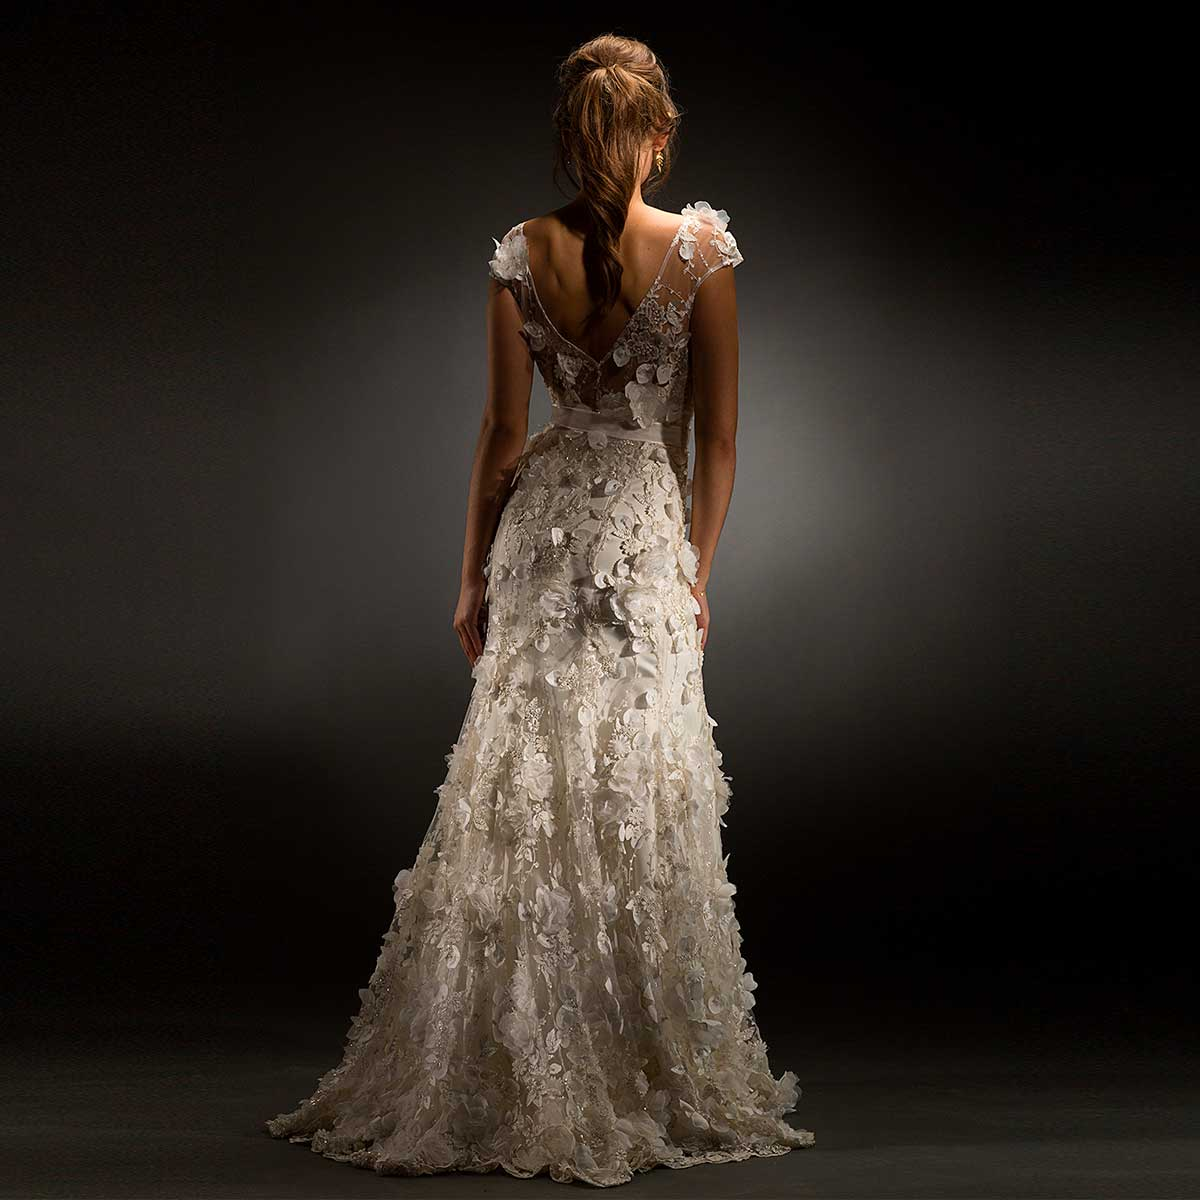 Claudia wedding dress designed by Rikke Gudnitz, Gudnitz Copenhagen